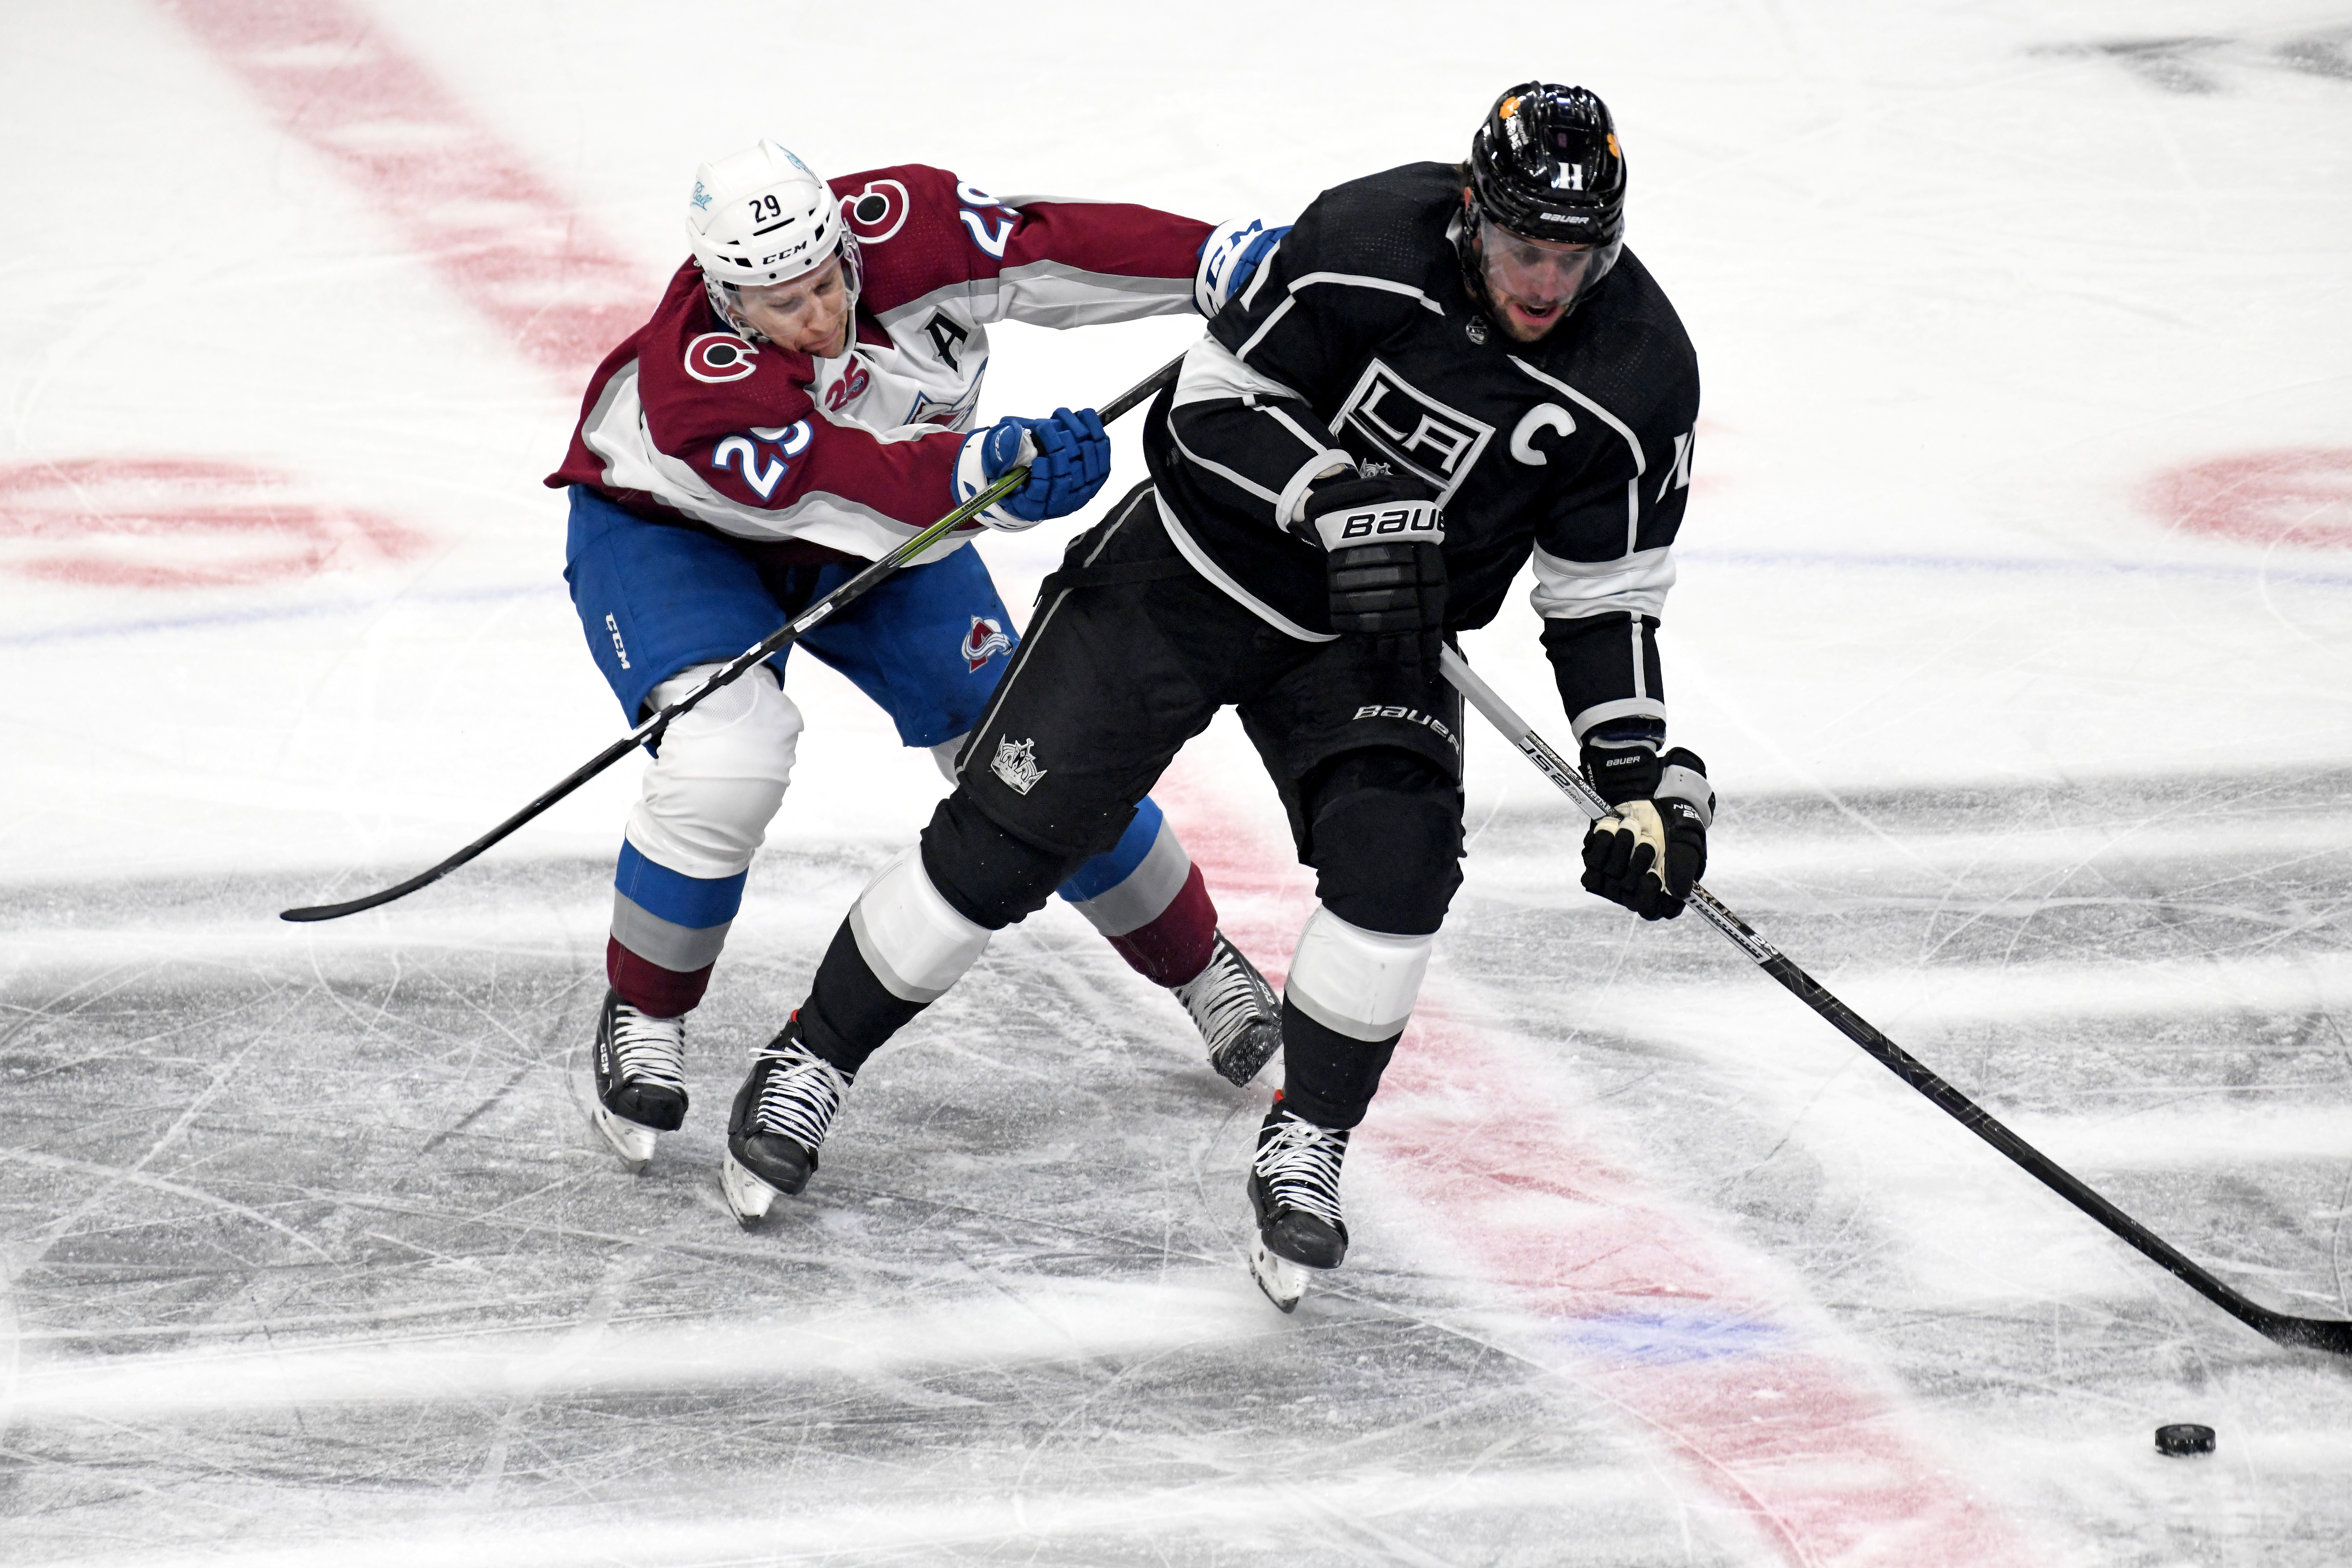 Colorado Avalanche Center Nathan MacKinnon (29) battles with Los Angeles Kings Center Anze Kopitar (11) during a National Hockey League game between the Colorado Avalanche and the Los Angeles Kings on January 21, 2021, at the Staples Center in Los Angeles, CA.